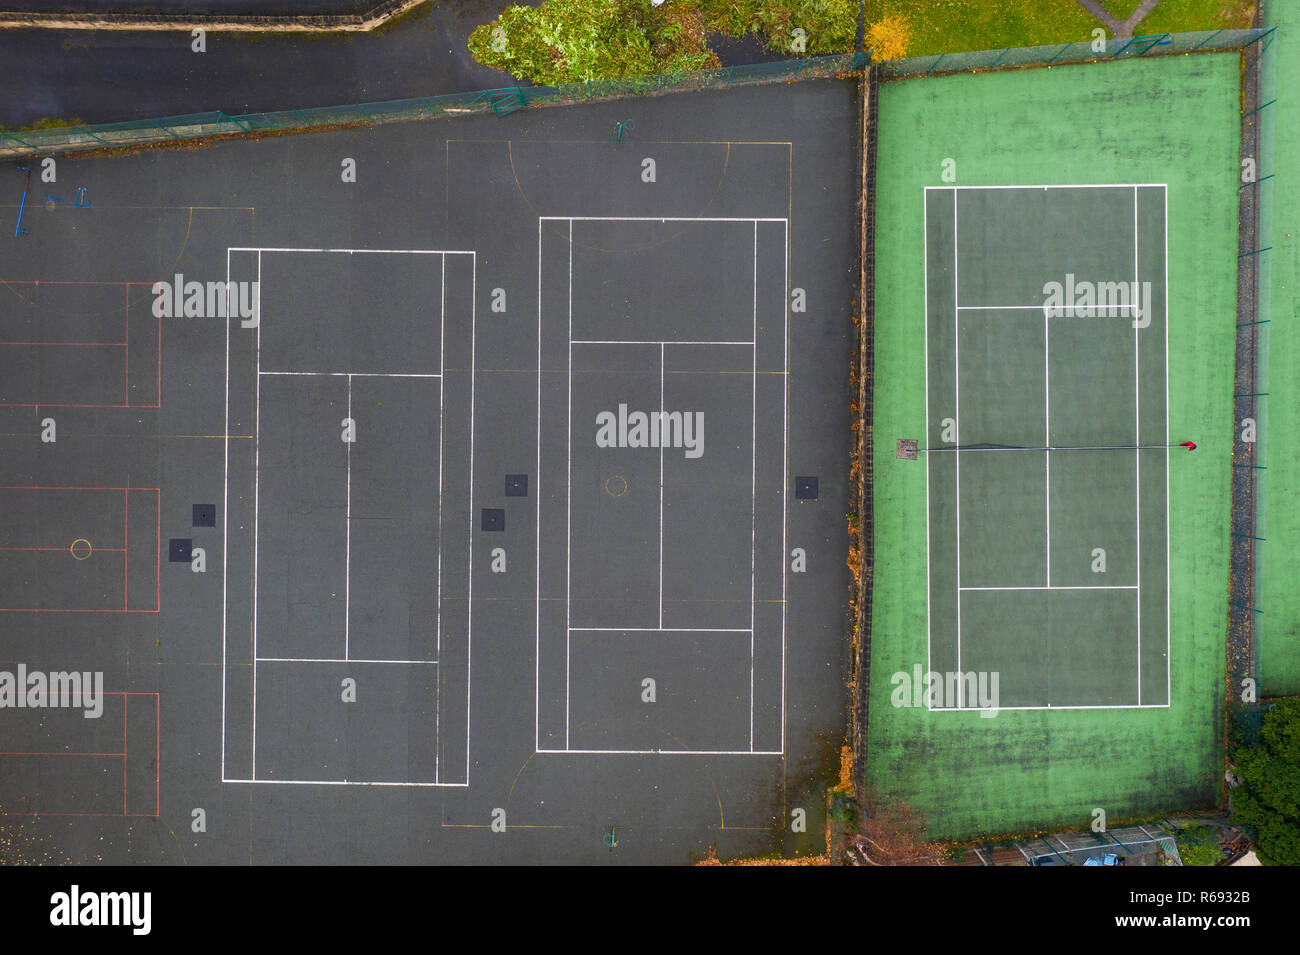 aerial overhead view of a row of green tennis courts